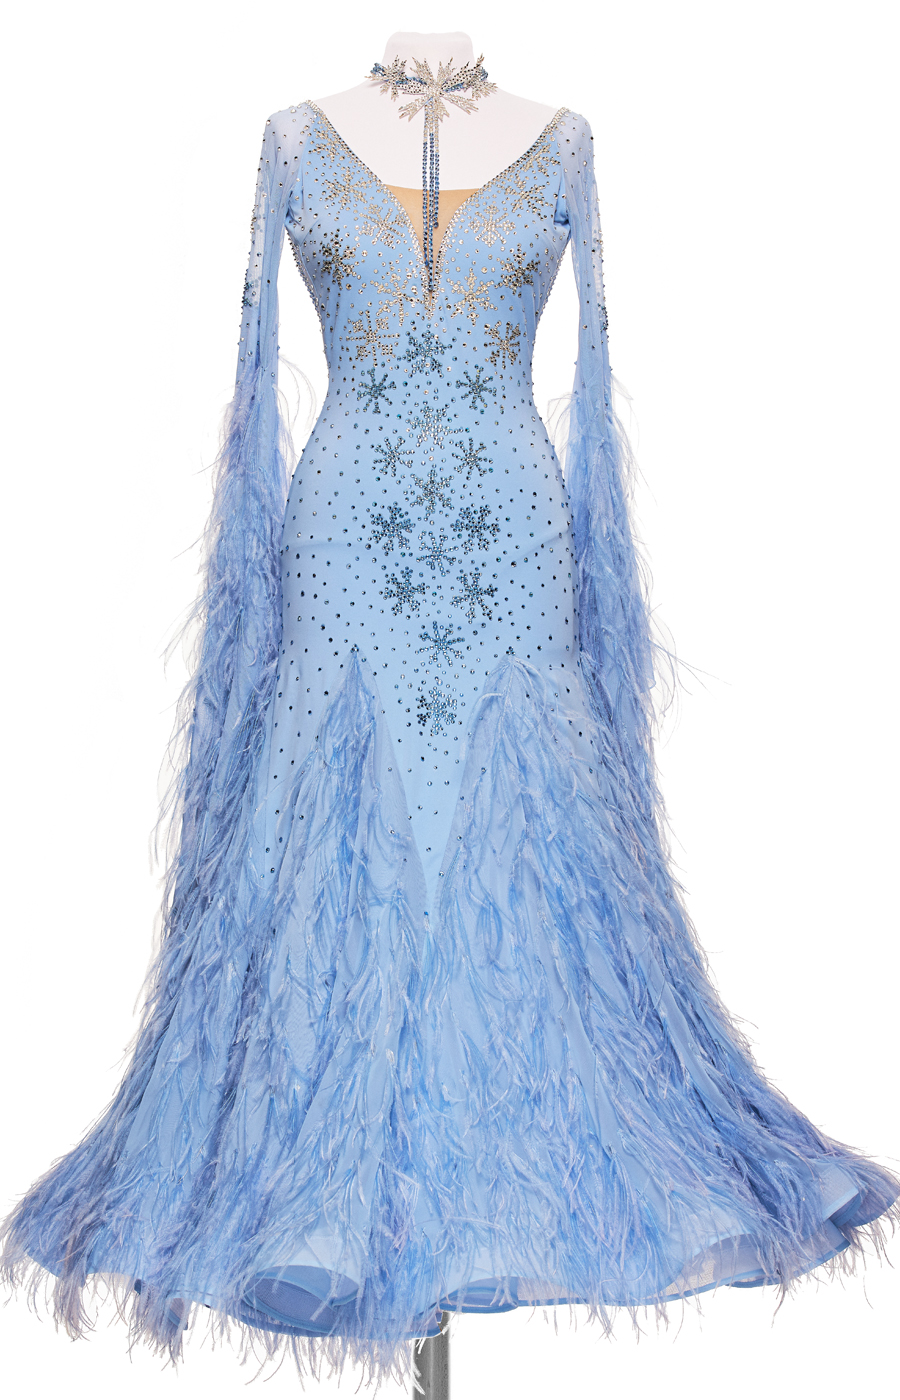 Ballroom dress Bluebell_Dream